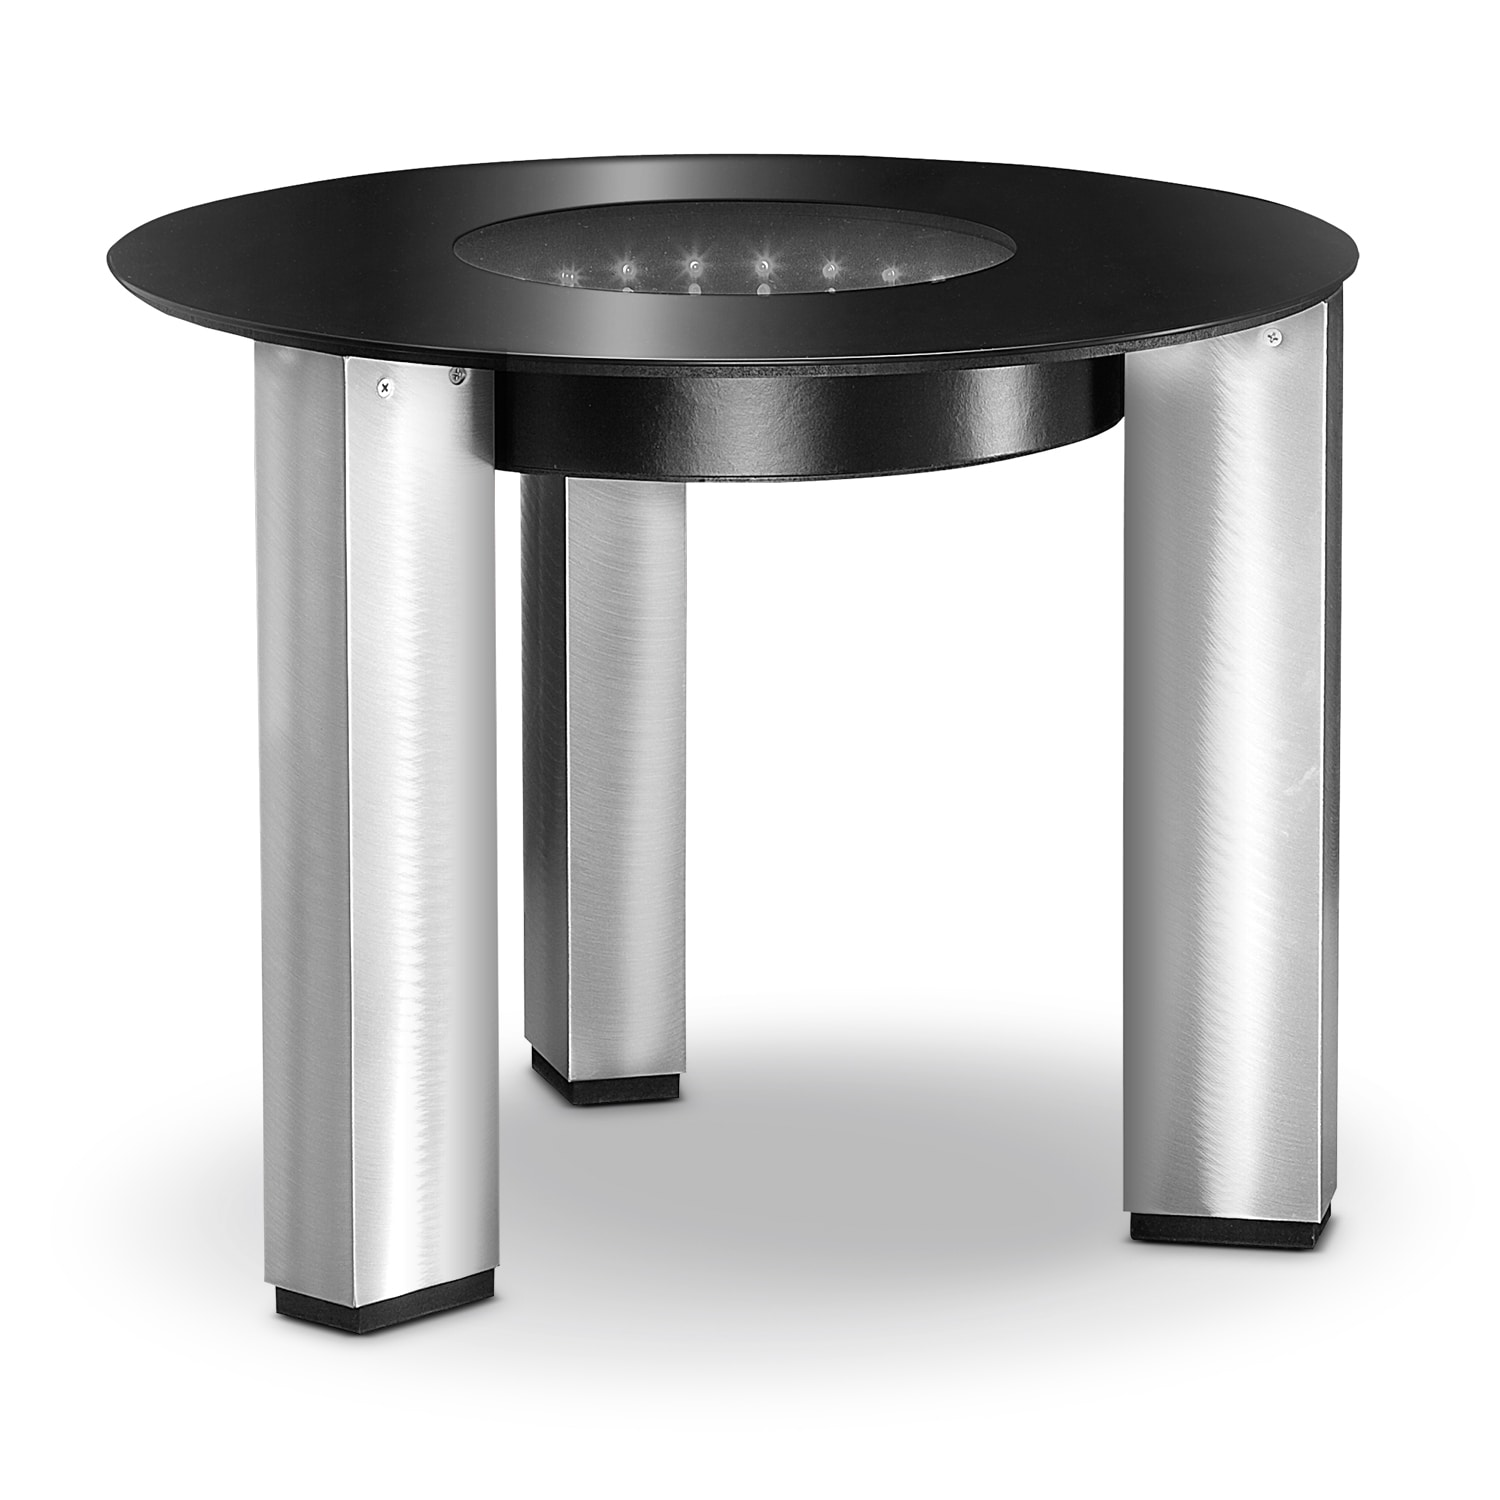 City Lights End Table - Silver and Black